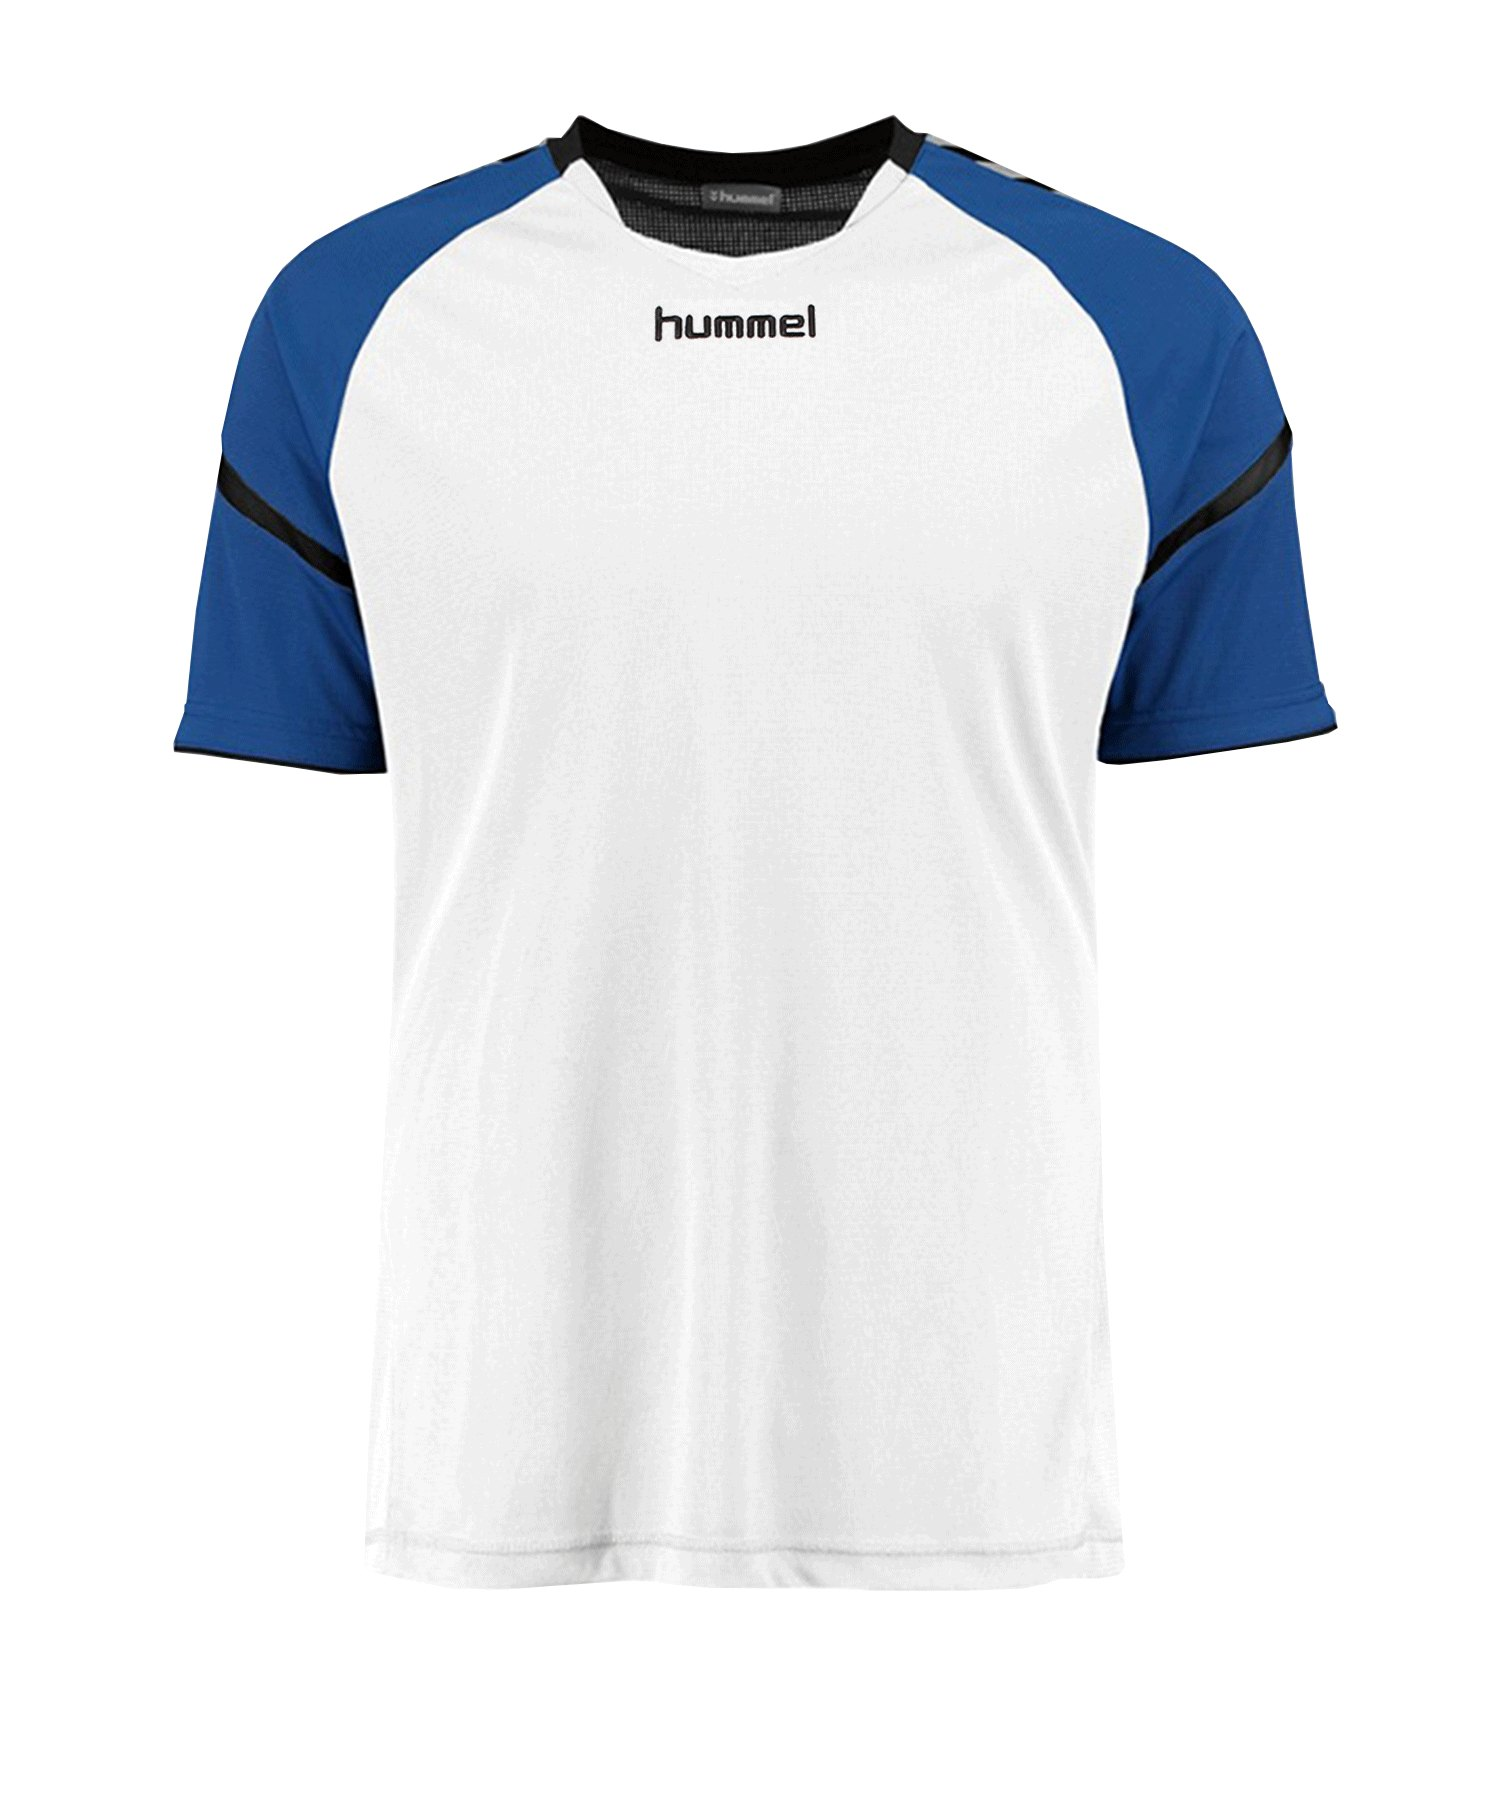 Hummel Trikot Authentic Charge SS Weiss F9368 - weiss